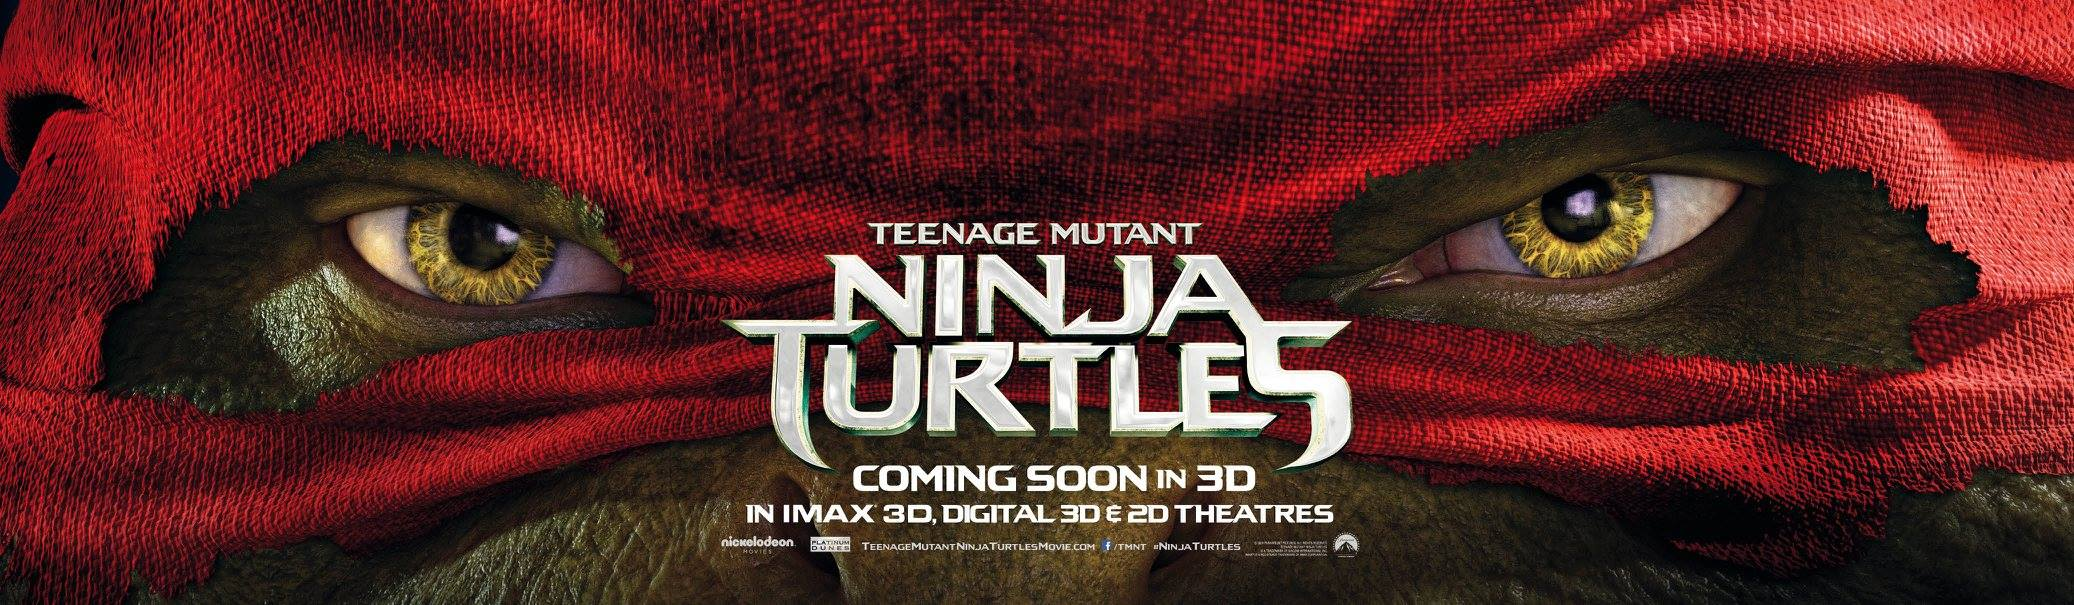 TEENAGE MUTANT NINJA TURTLES-Official Poster Banner PROMO XLG-04AGOSTO2014-02